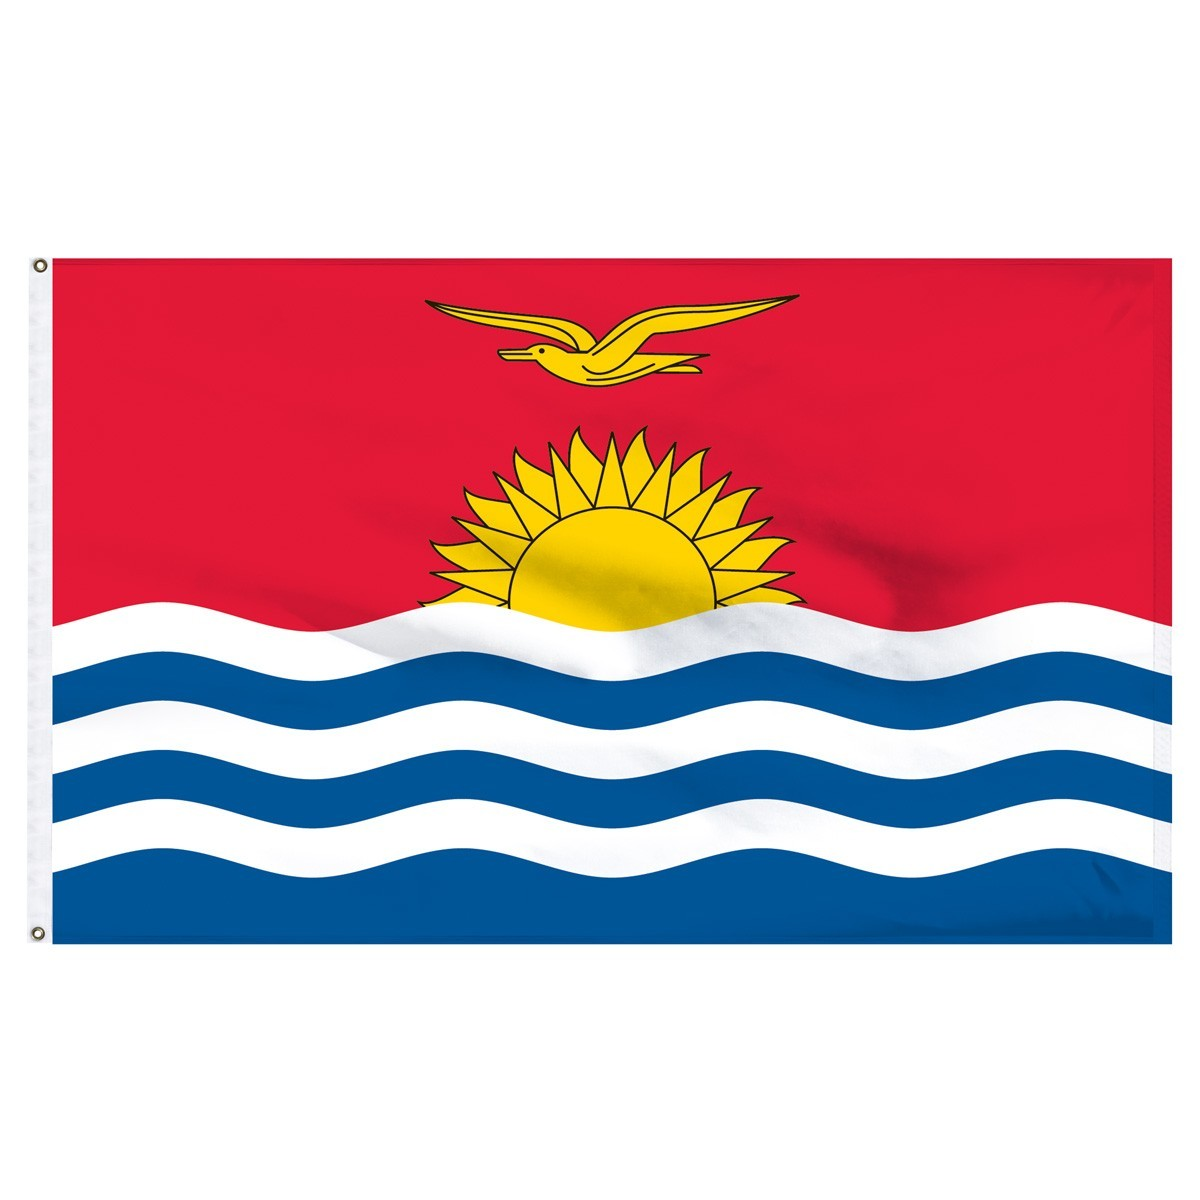 Kiribati 3' x 5' Outdoor Nylon Flag